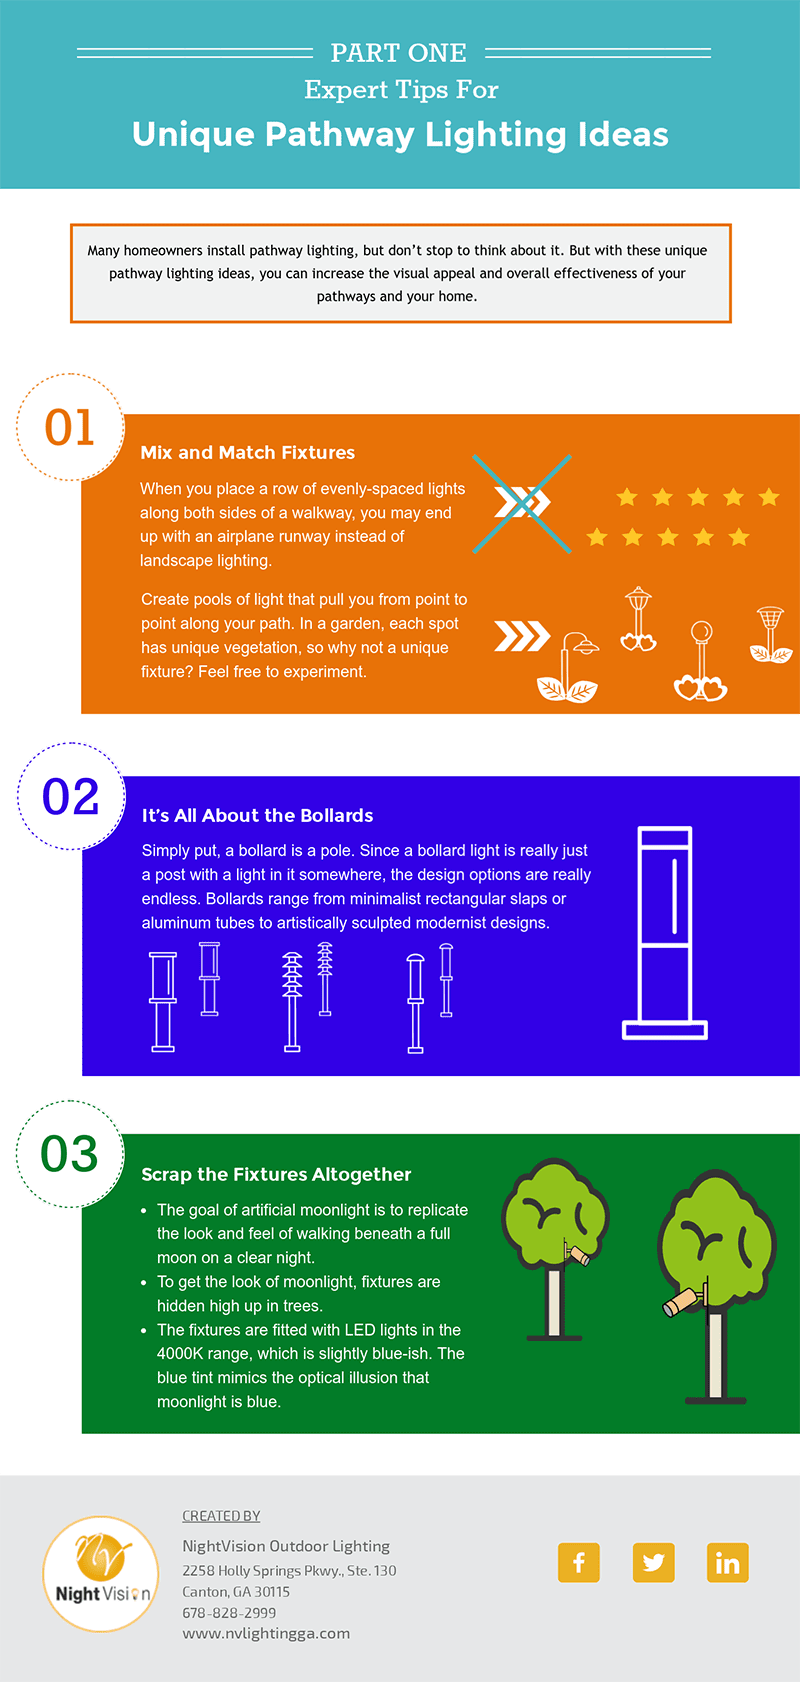 Unique Pathway Lighting Ideas - Part 1 [infographic]